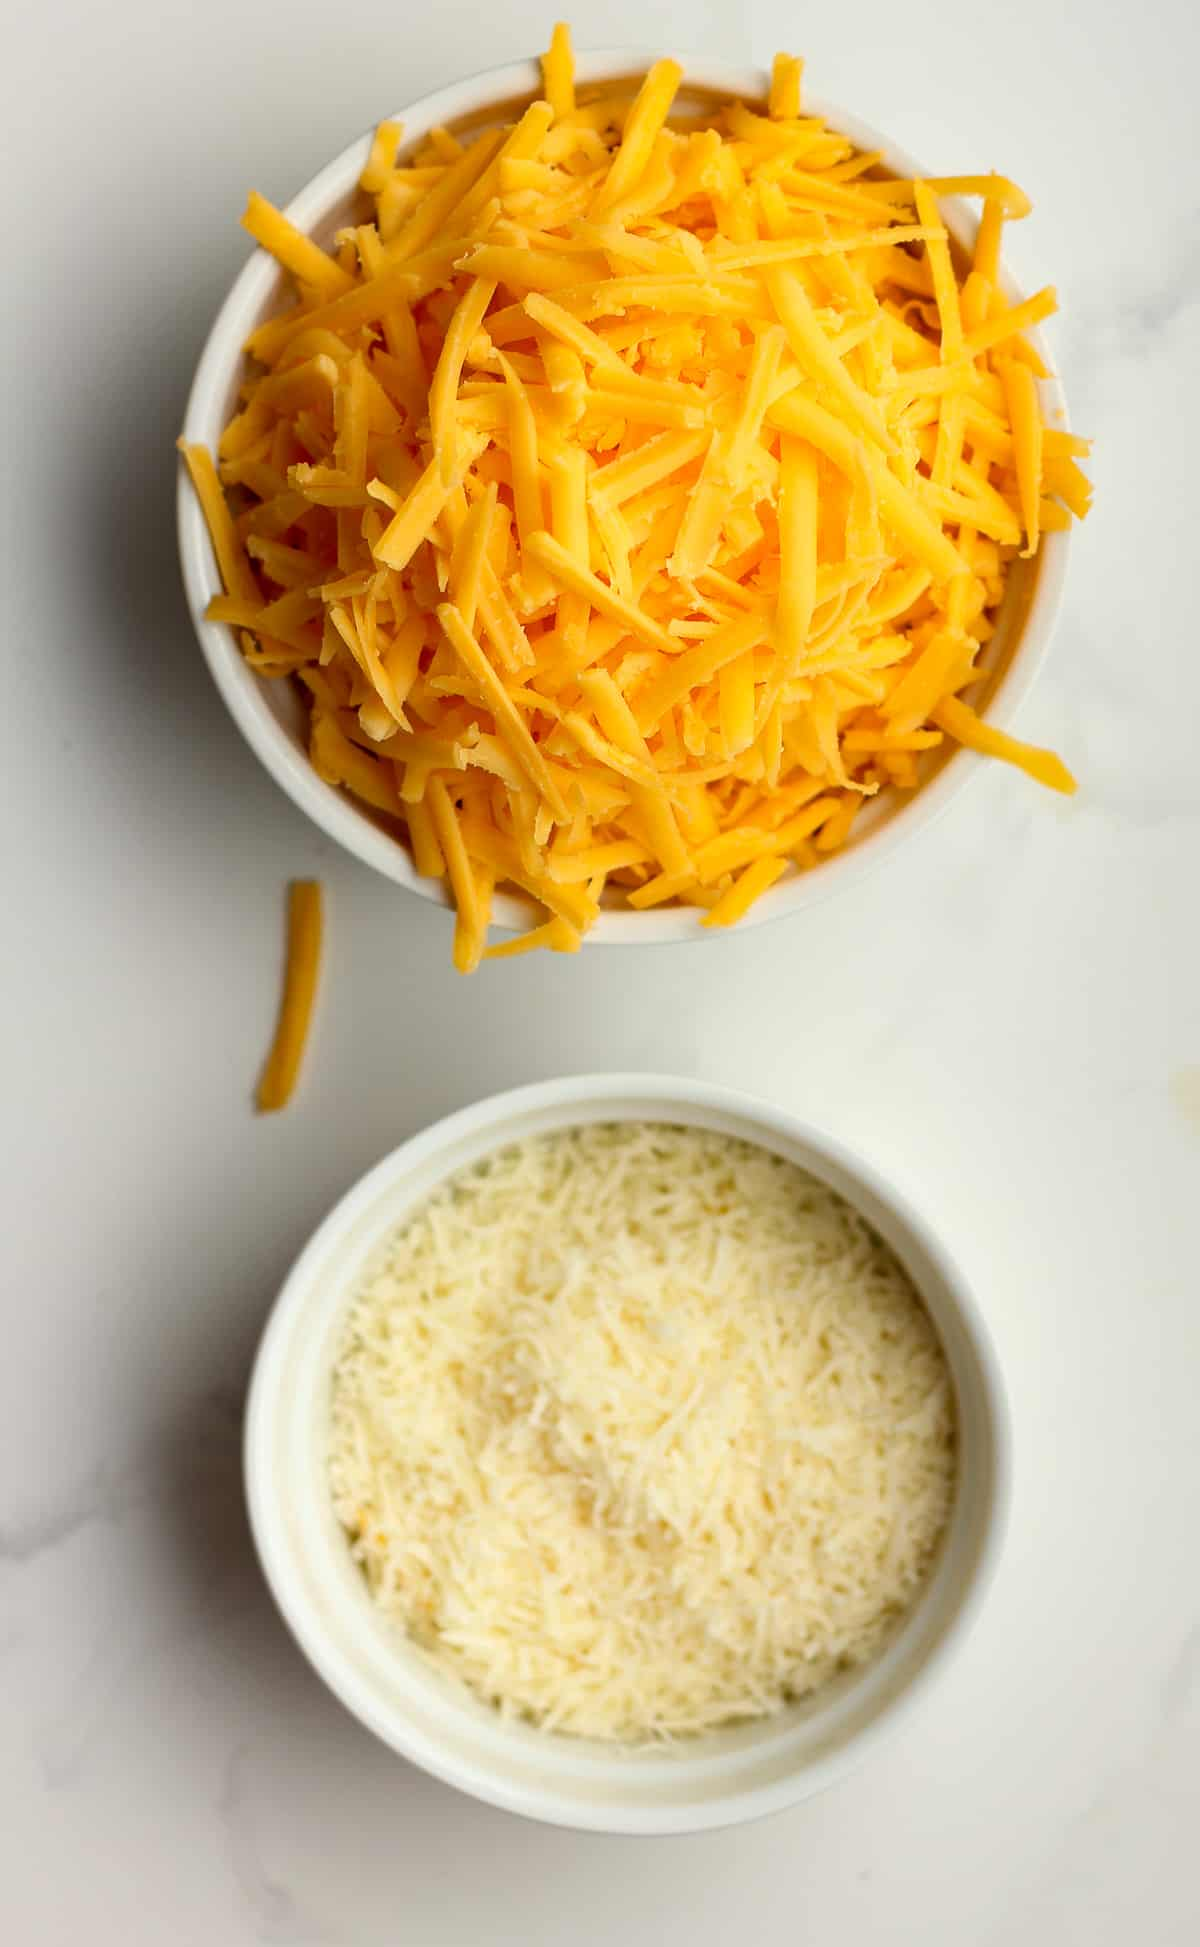 Bowls of the shredded cheese.